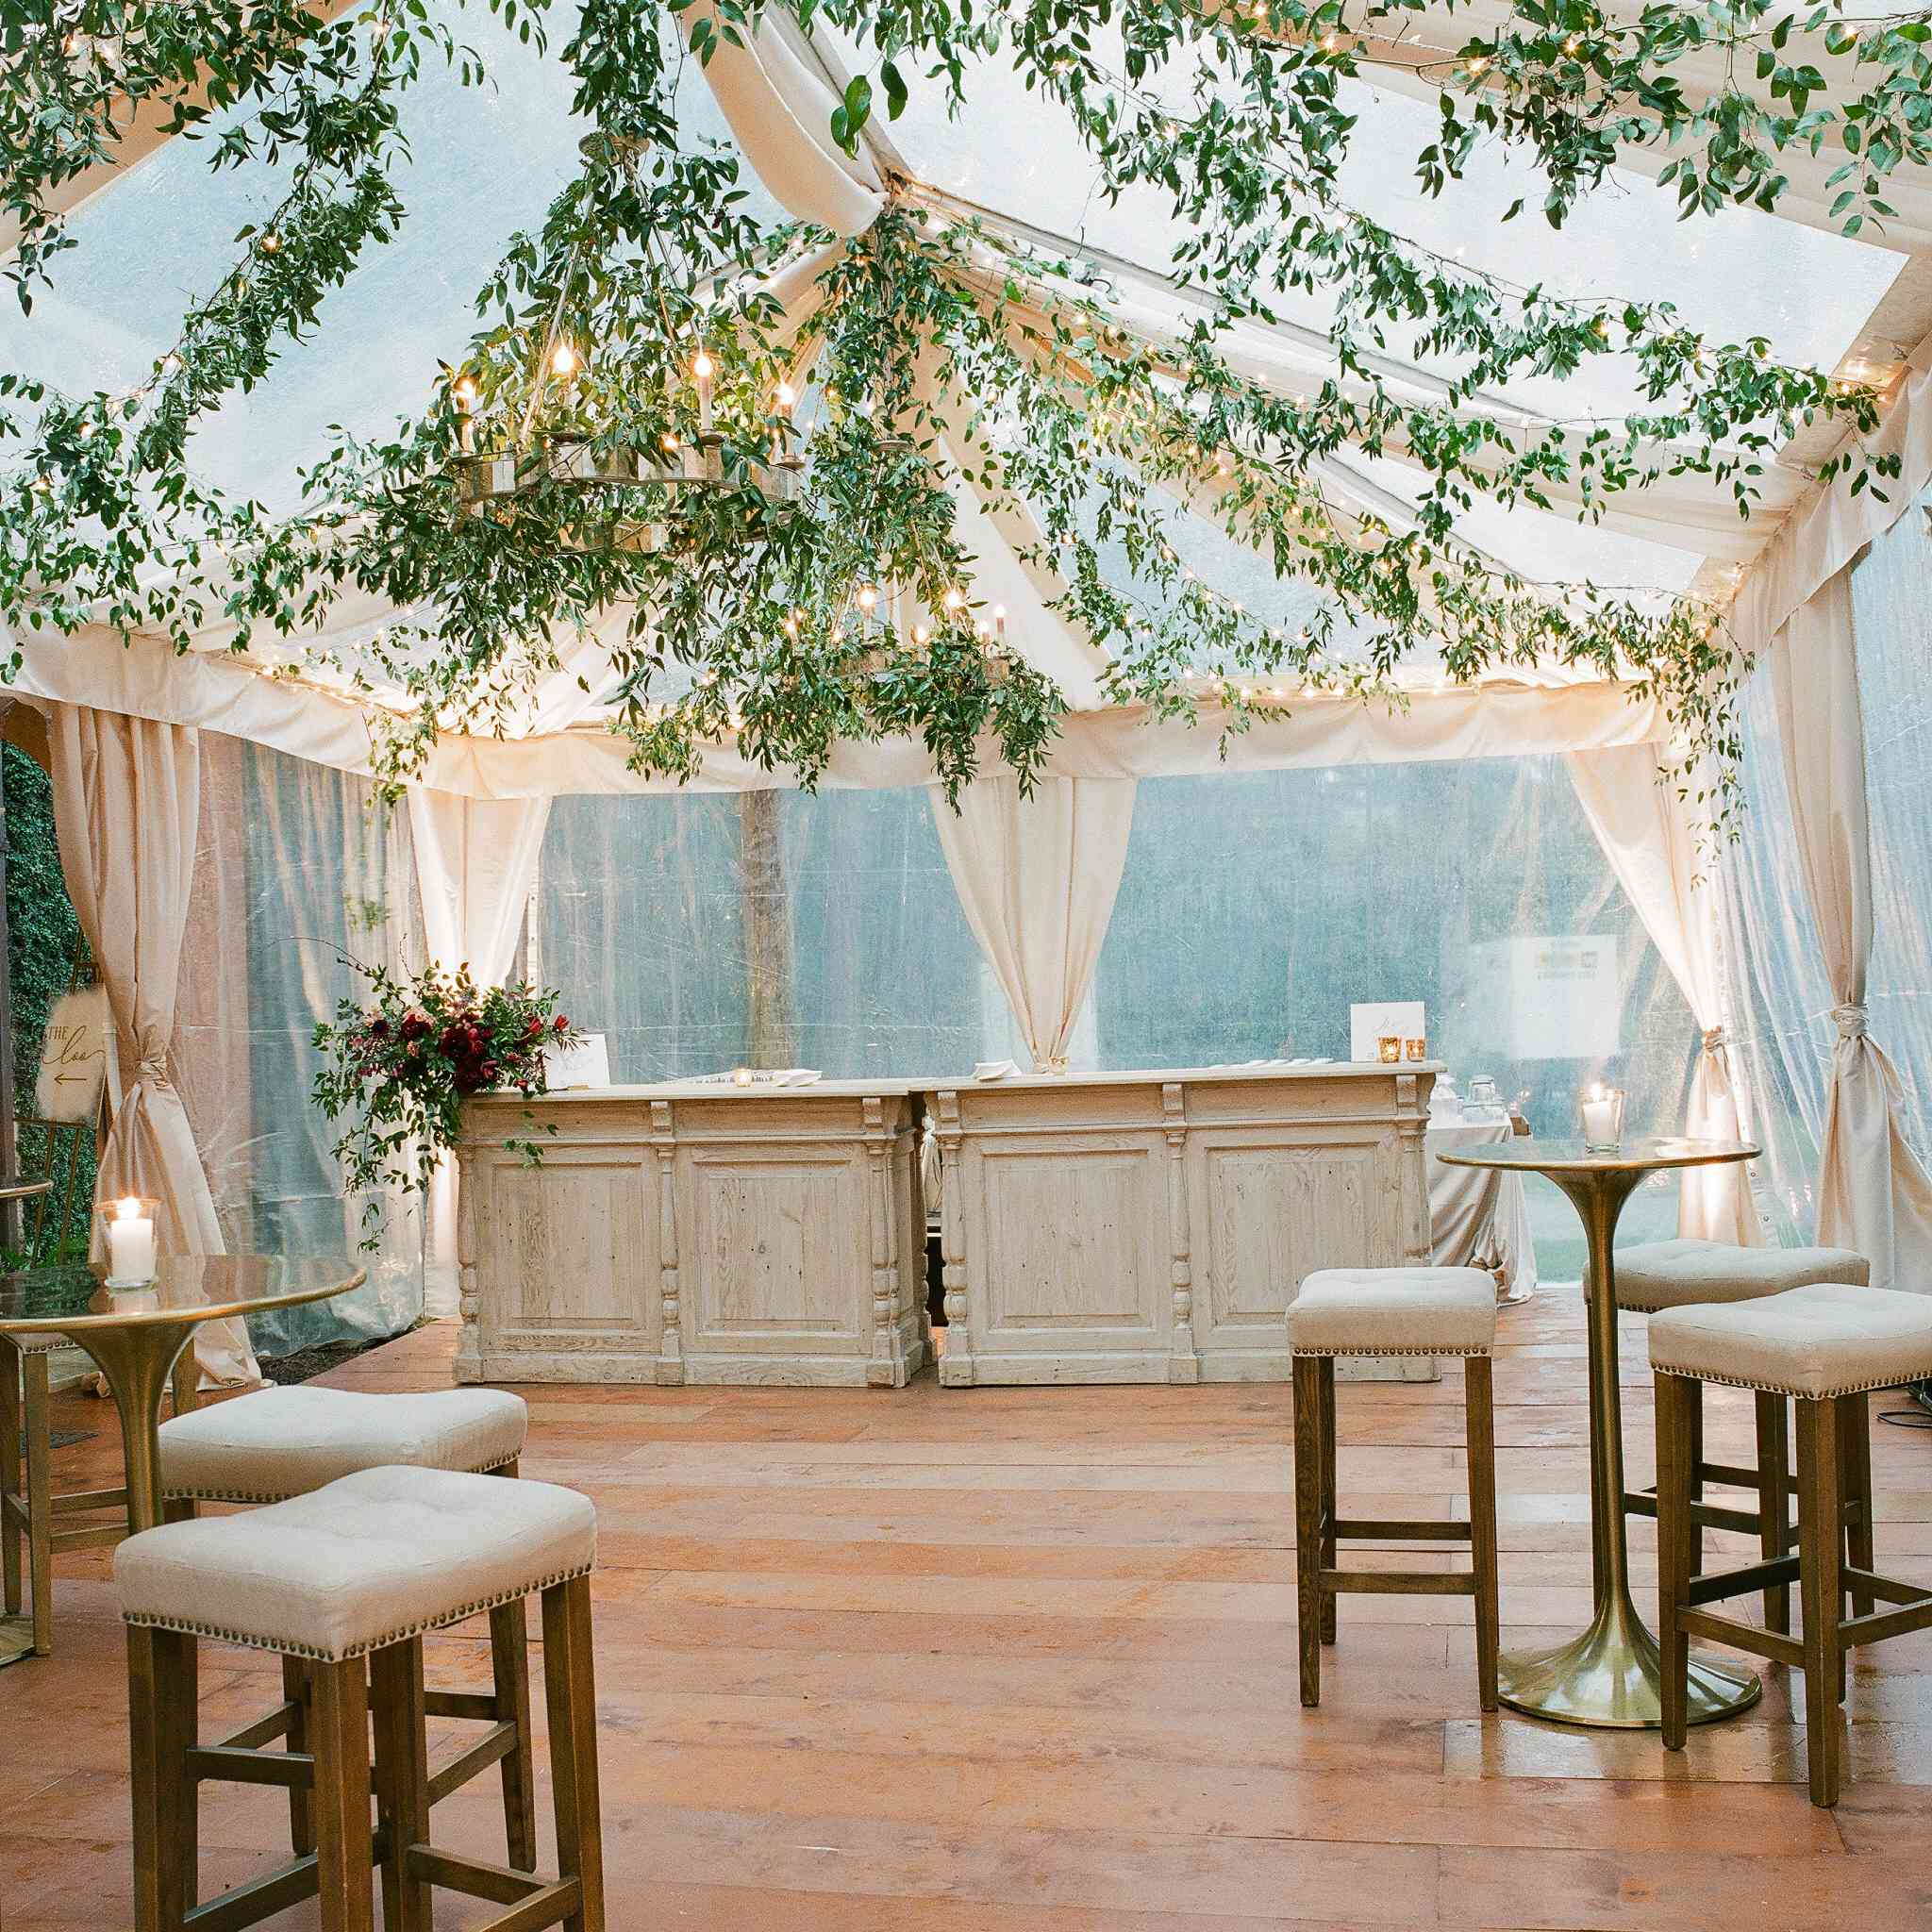 Drapery and greenery draping in tent